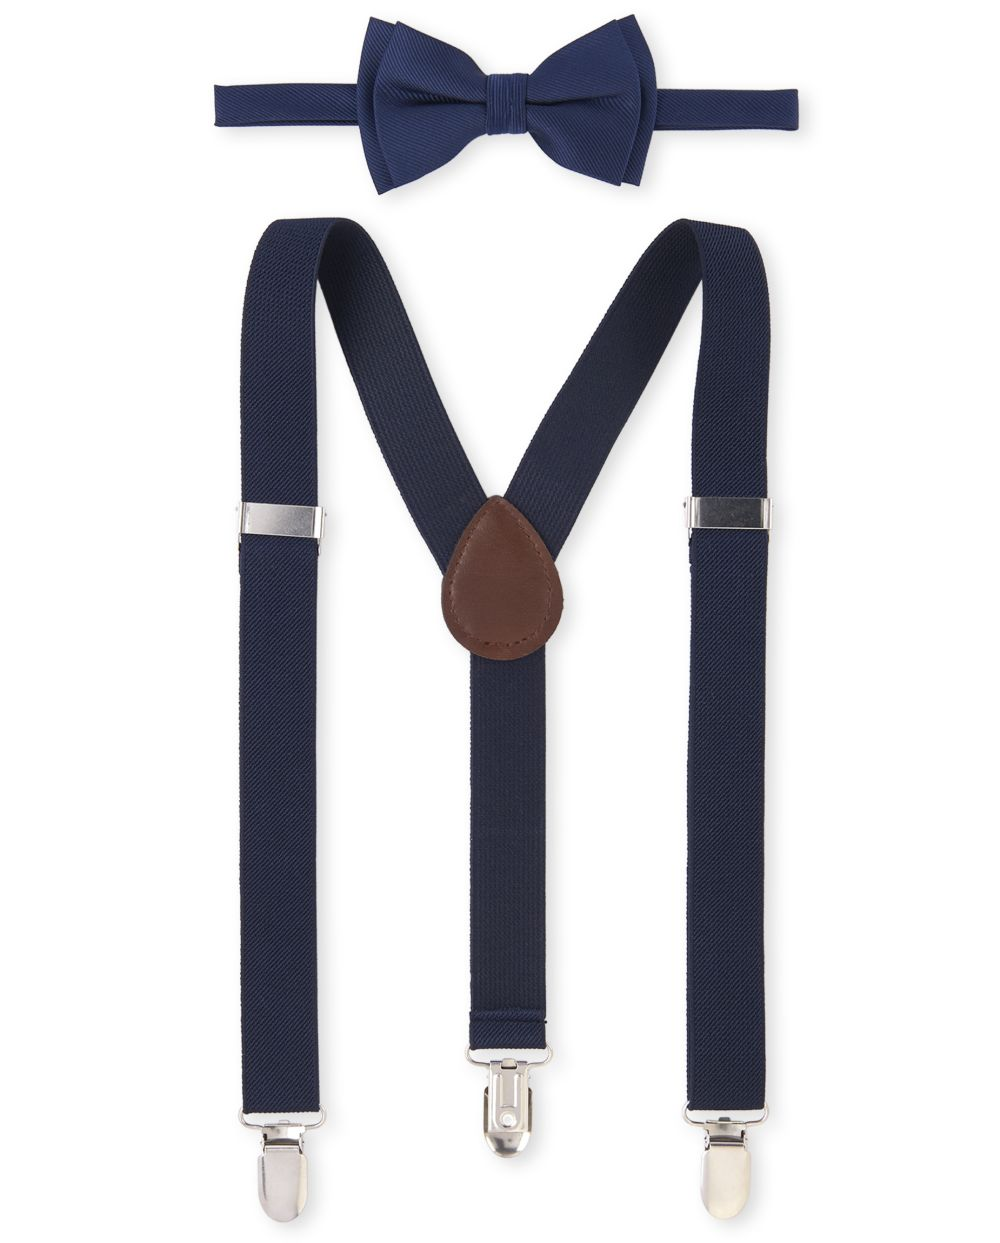 Boys Uniform Bow Tie And Suspenders Set